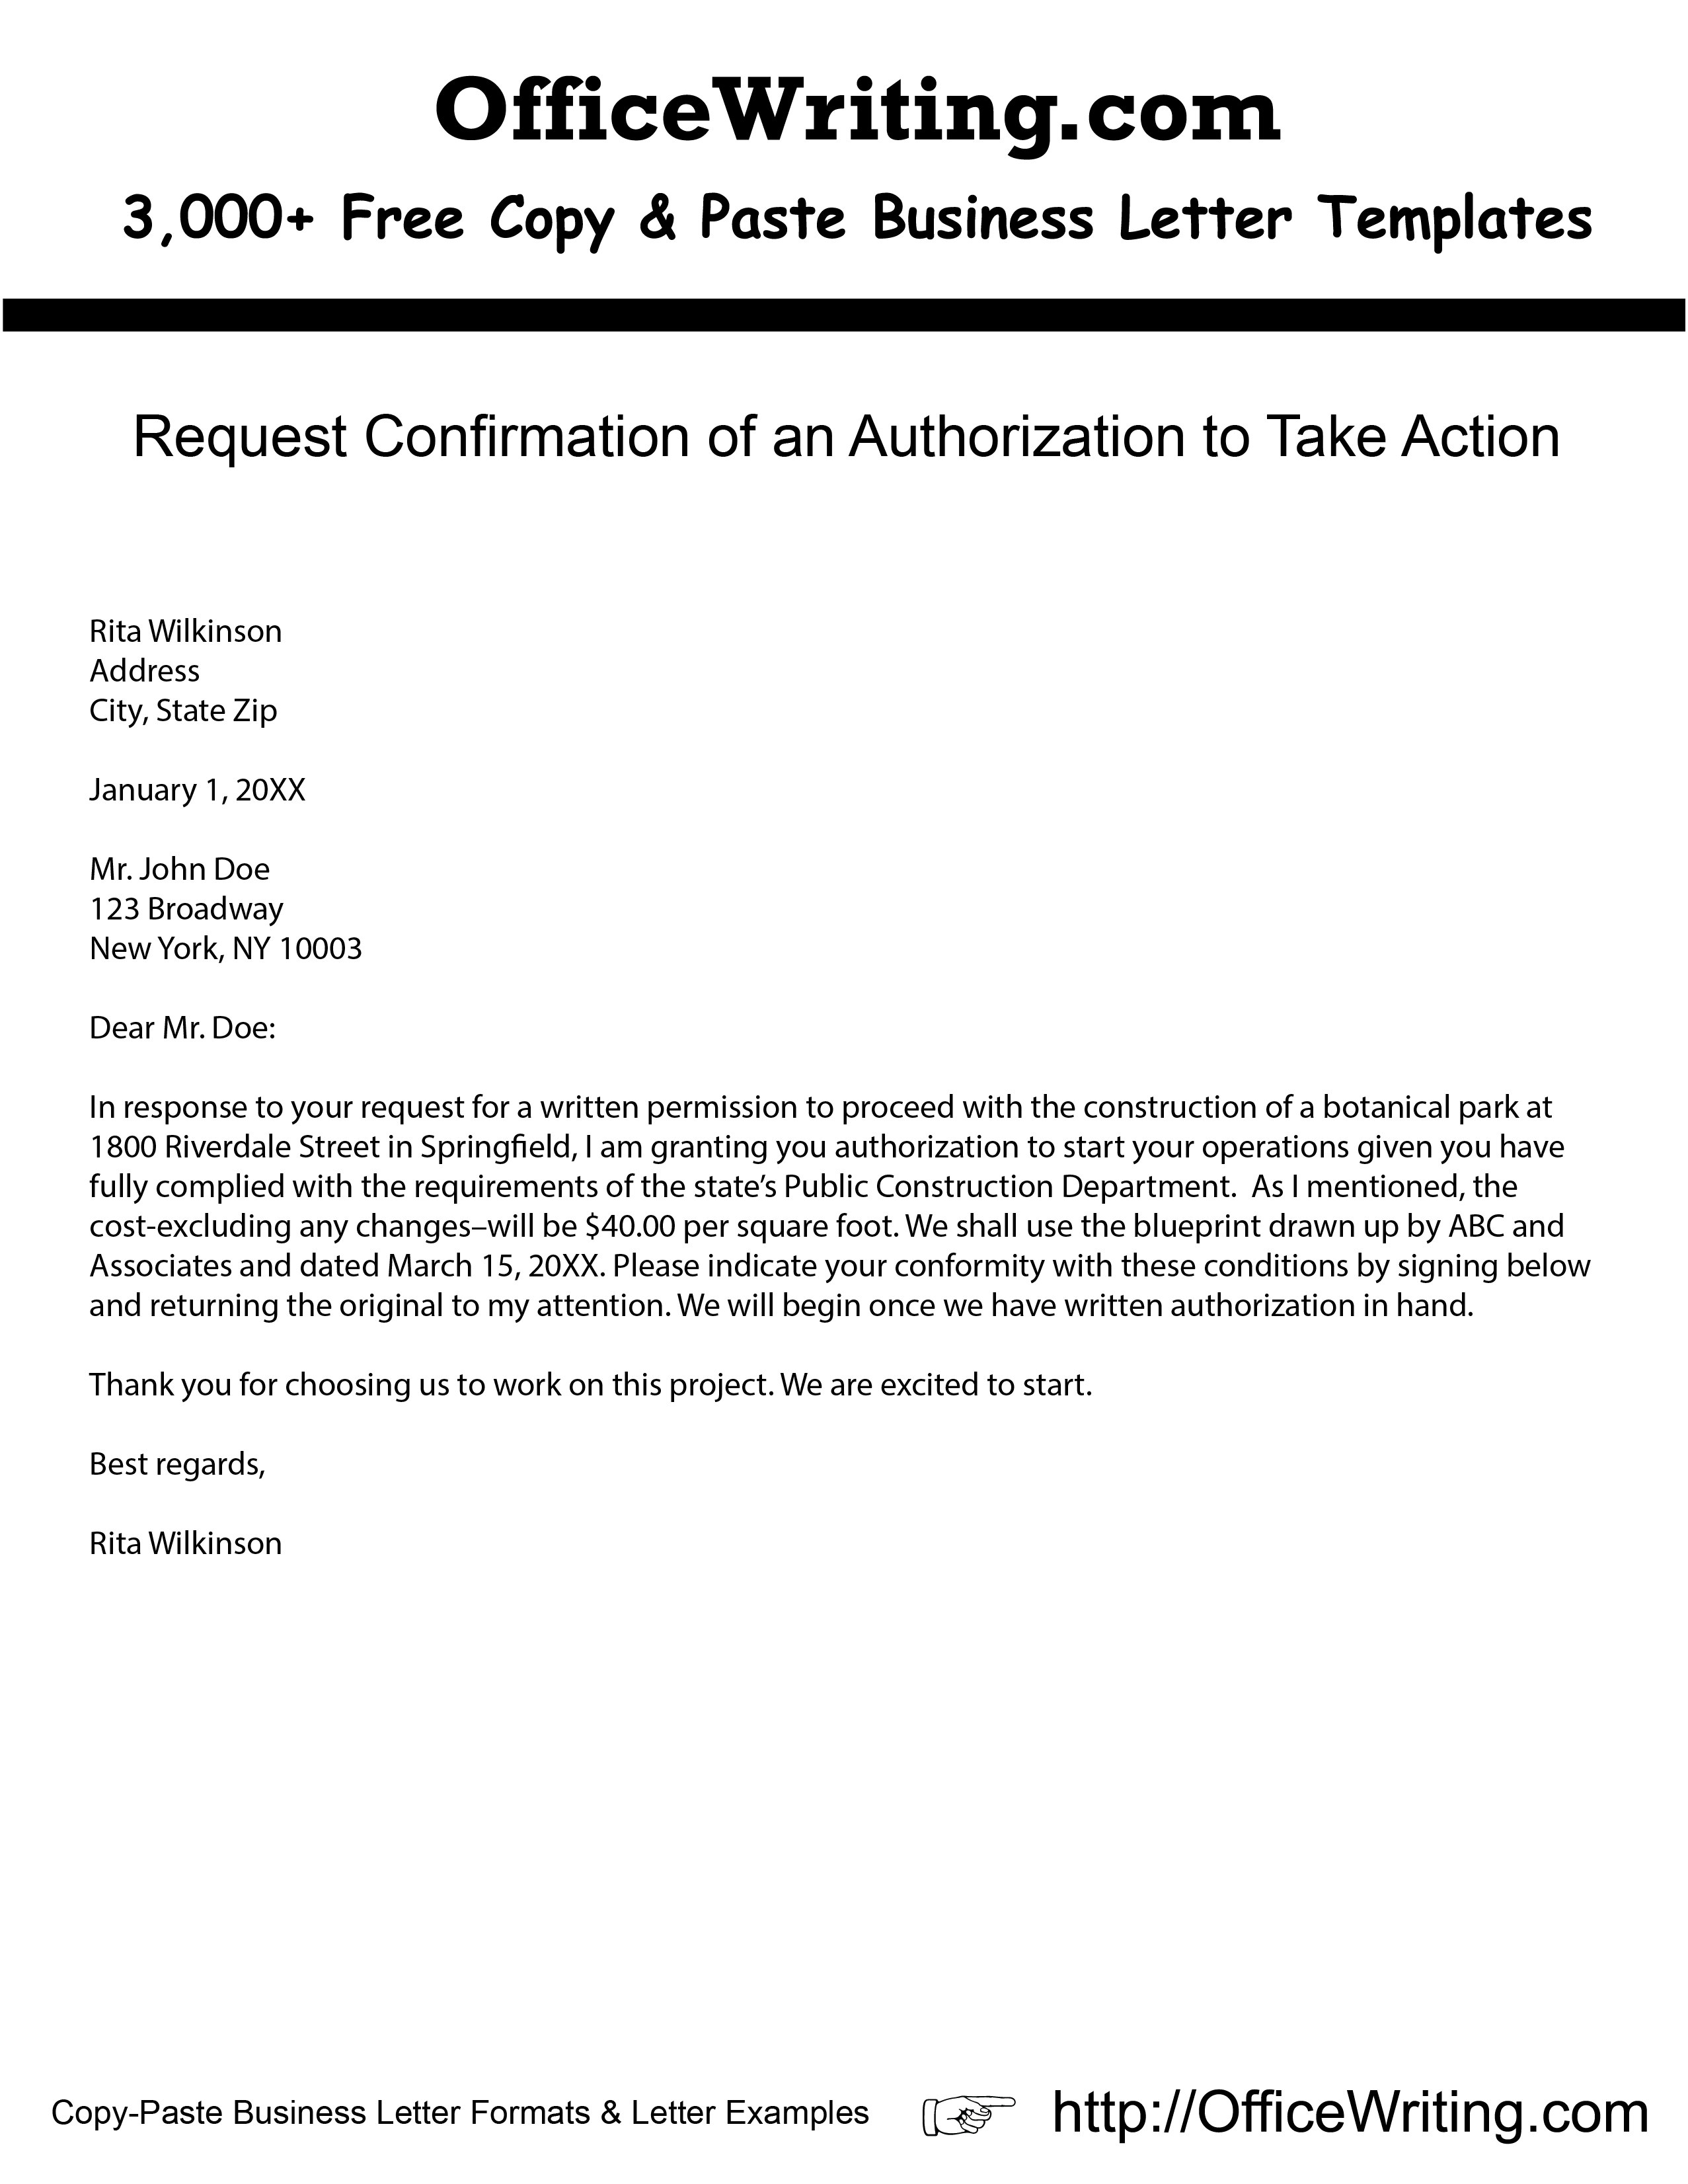 Request Confirmation Of An Authorization To Take Action Http